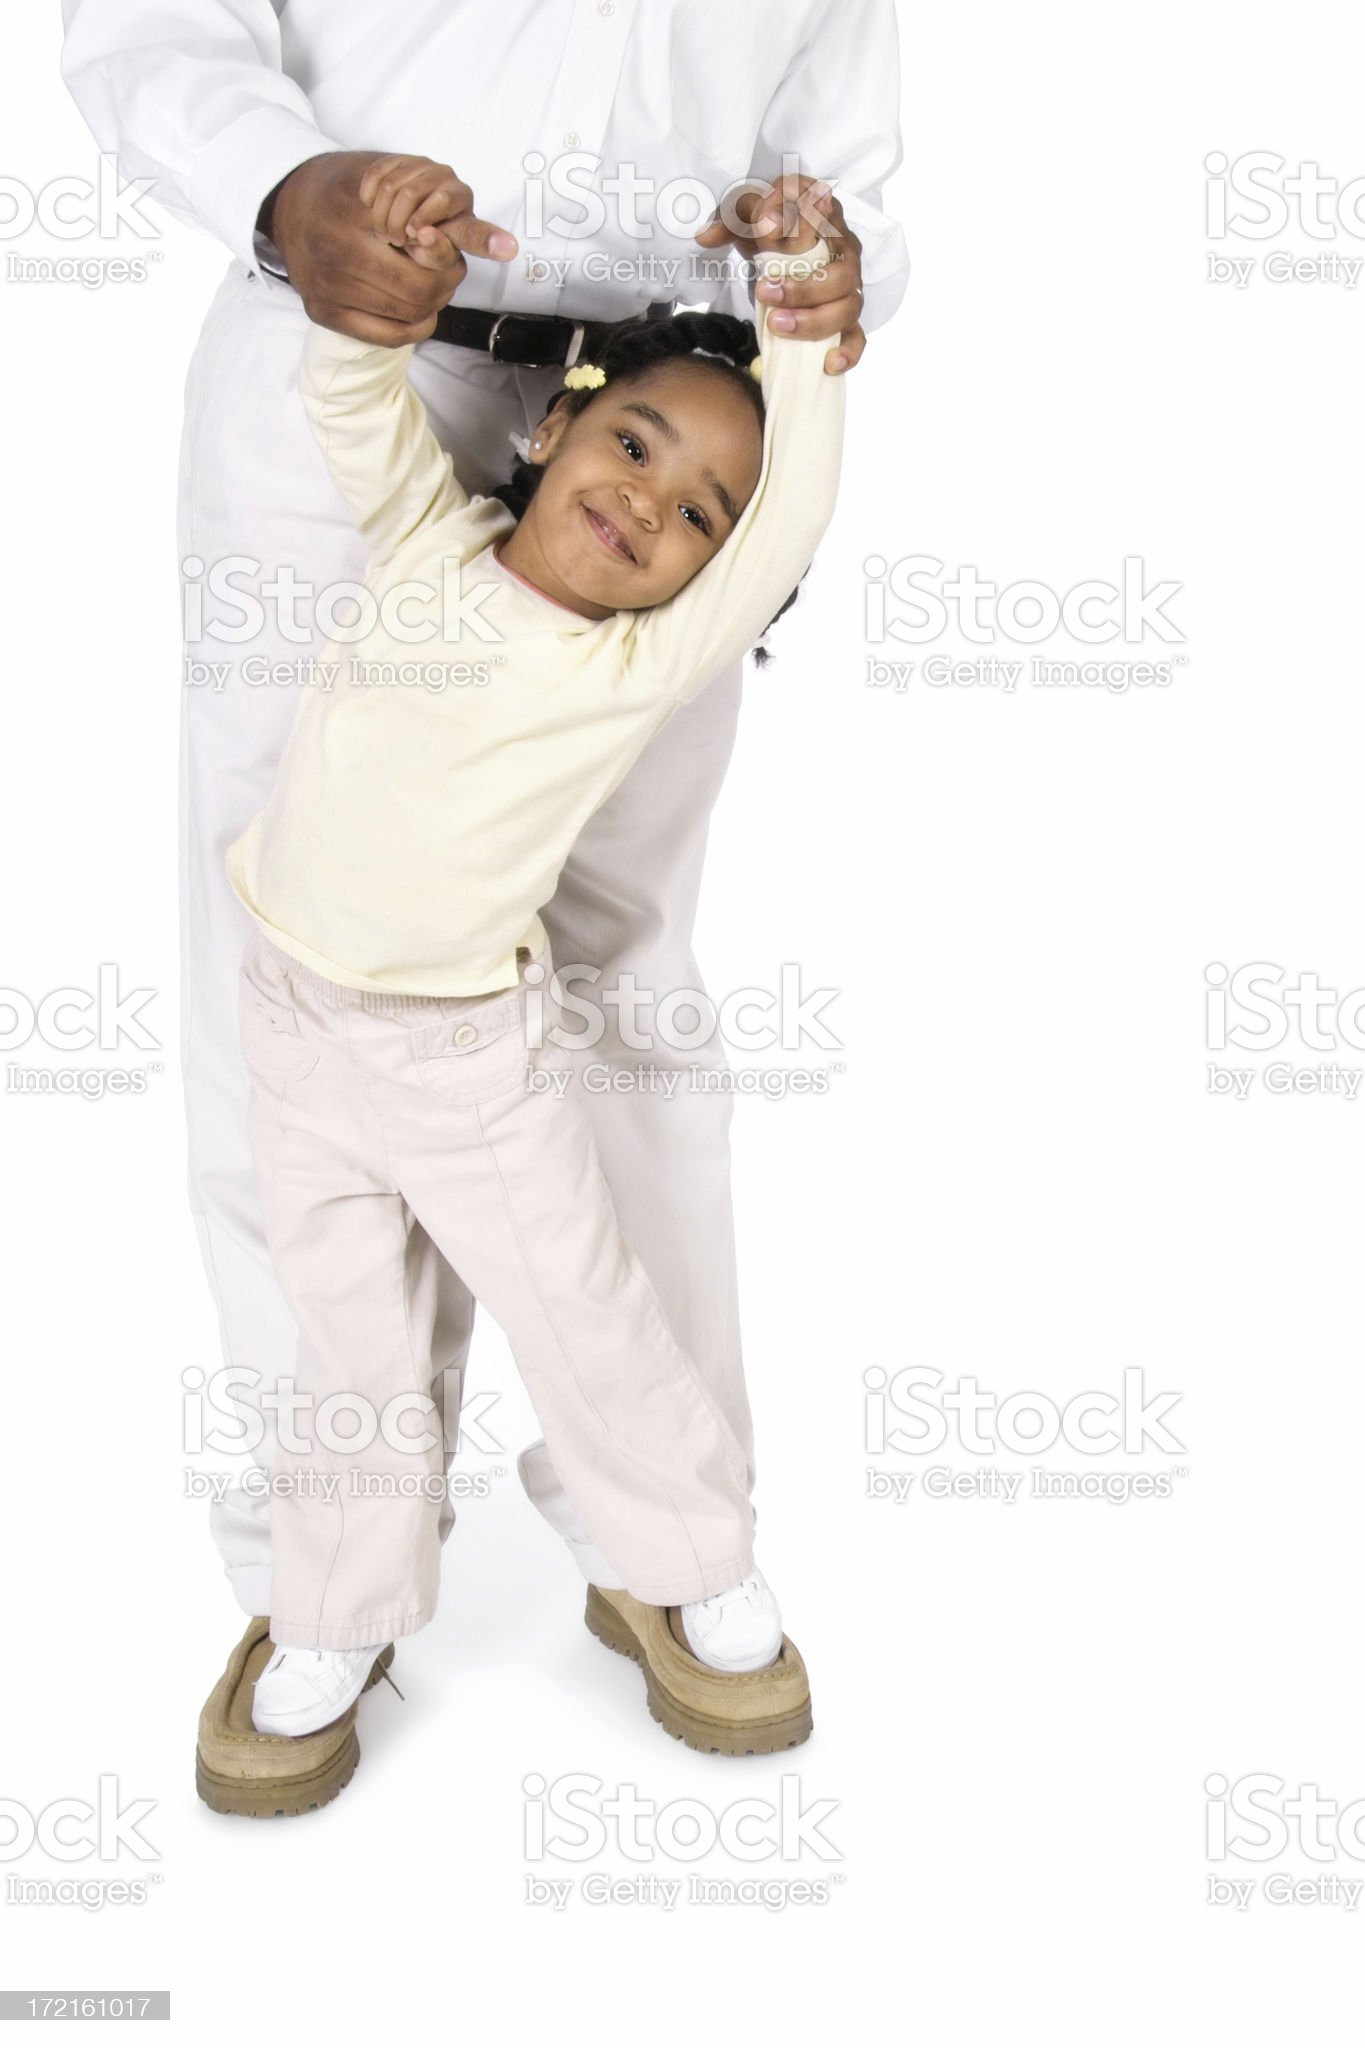 Walking on Top of Daddy's Feet royalty-free stock photo